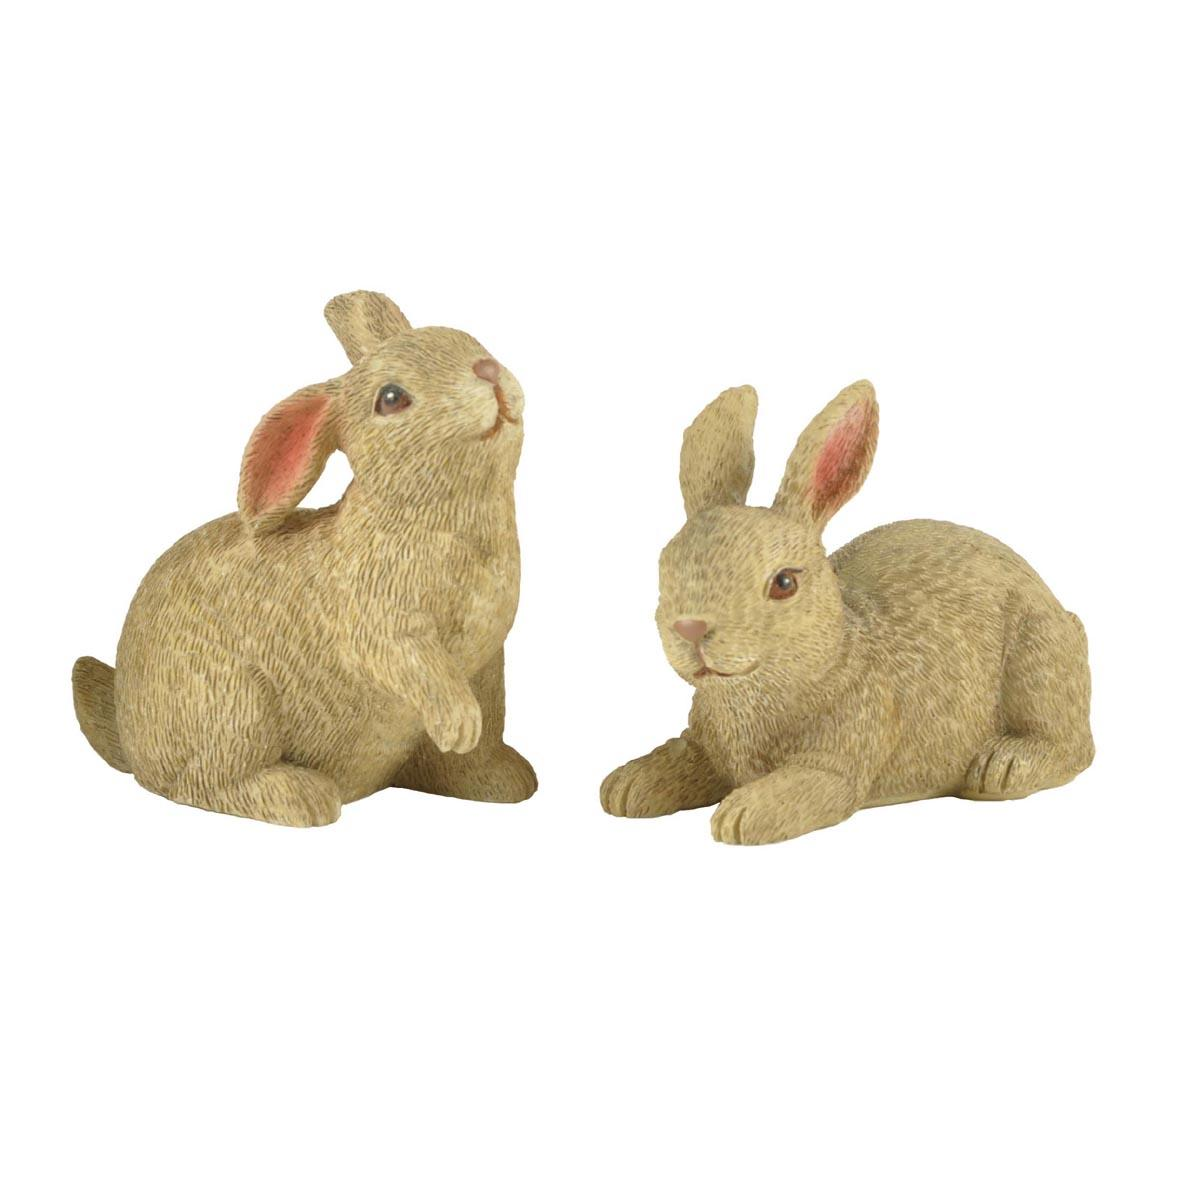 Garden Decor Resin Easter Gift Rabbit Statues with Custom Different Poses